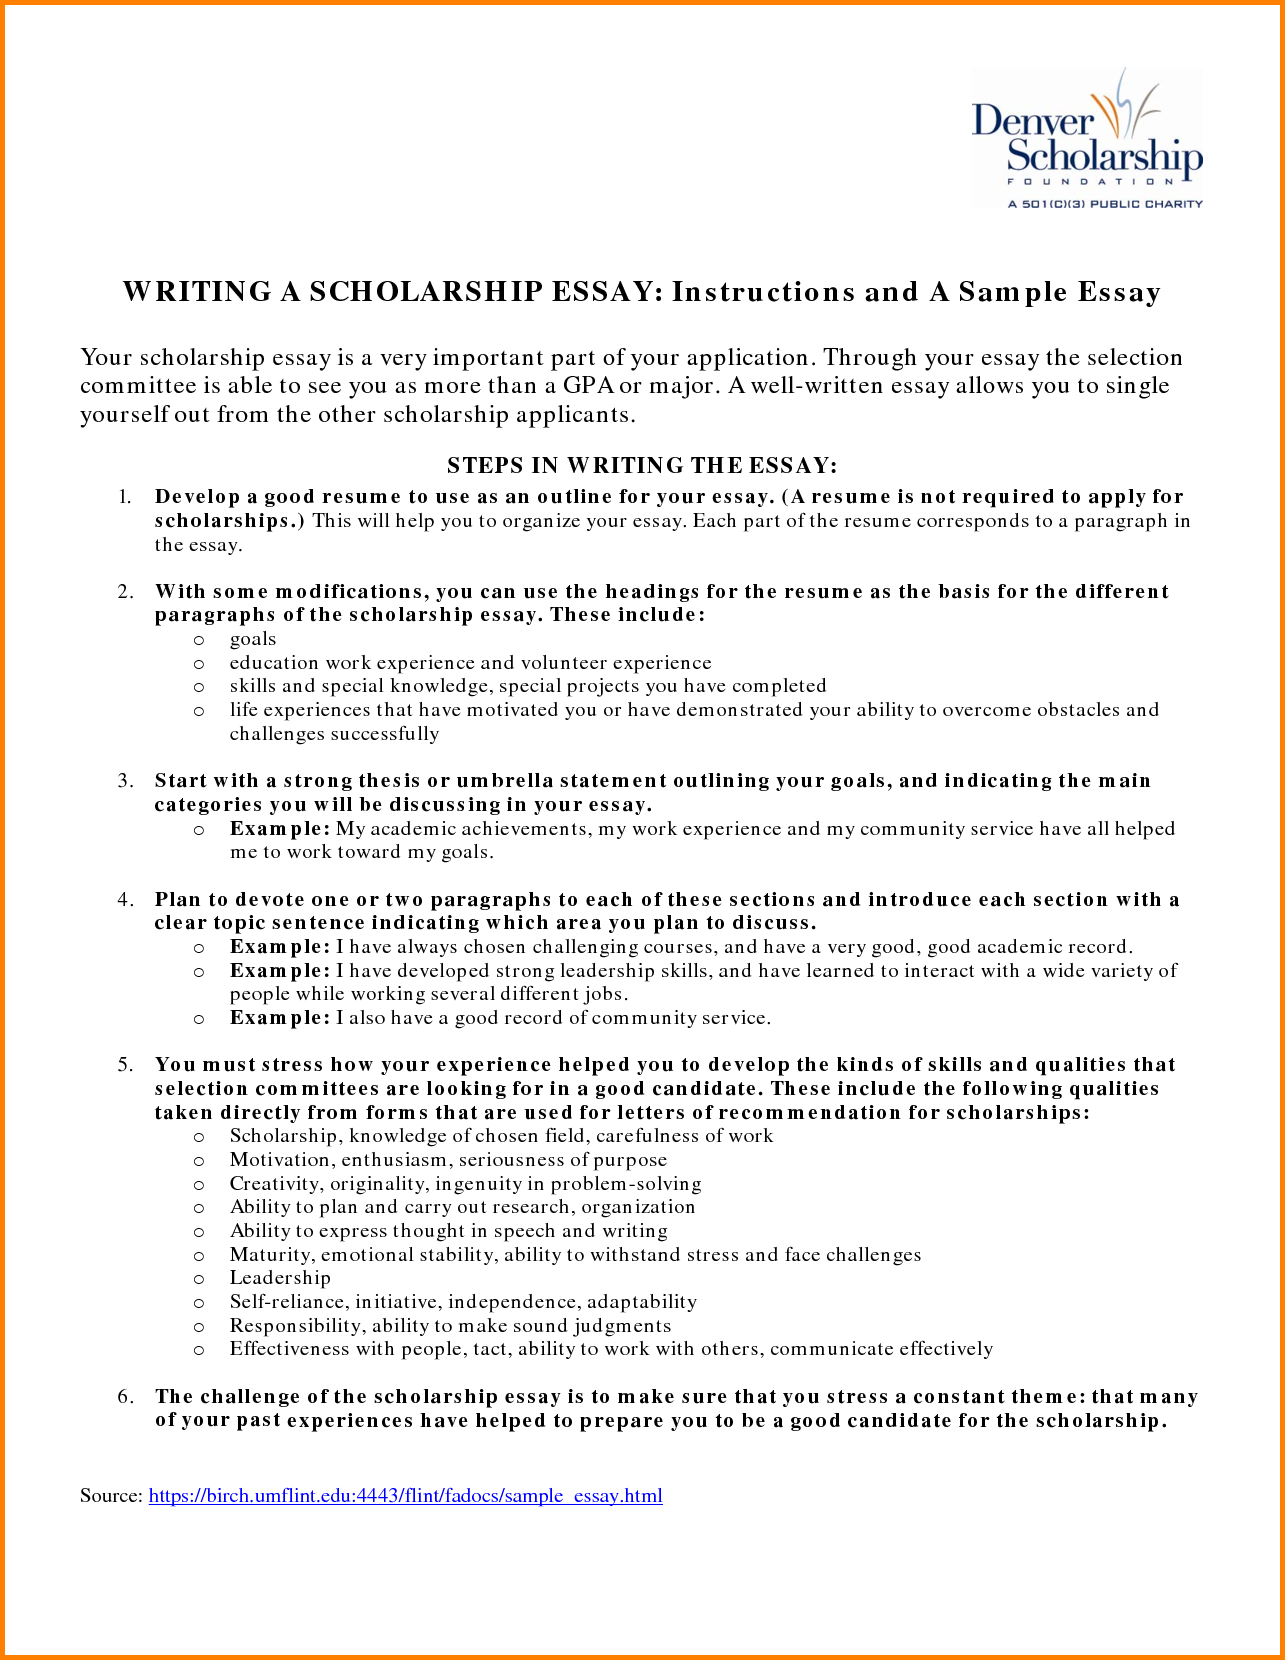 023 Inspiration Resume Examples For Scholarships With Nursing Scholarship Application Essay Example Fair In Sampl Nurse Staggering Mba Sample Tips College Ideas Full